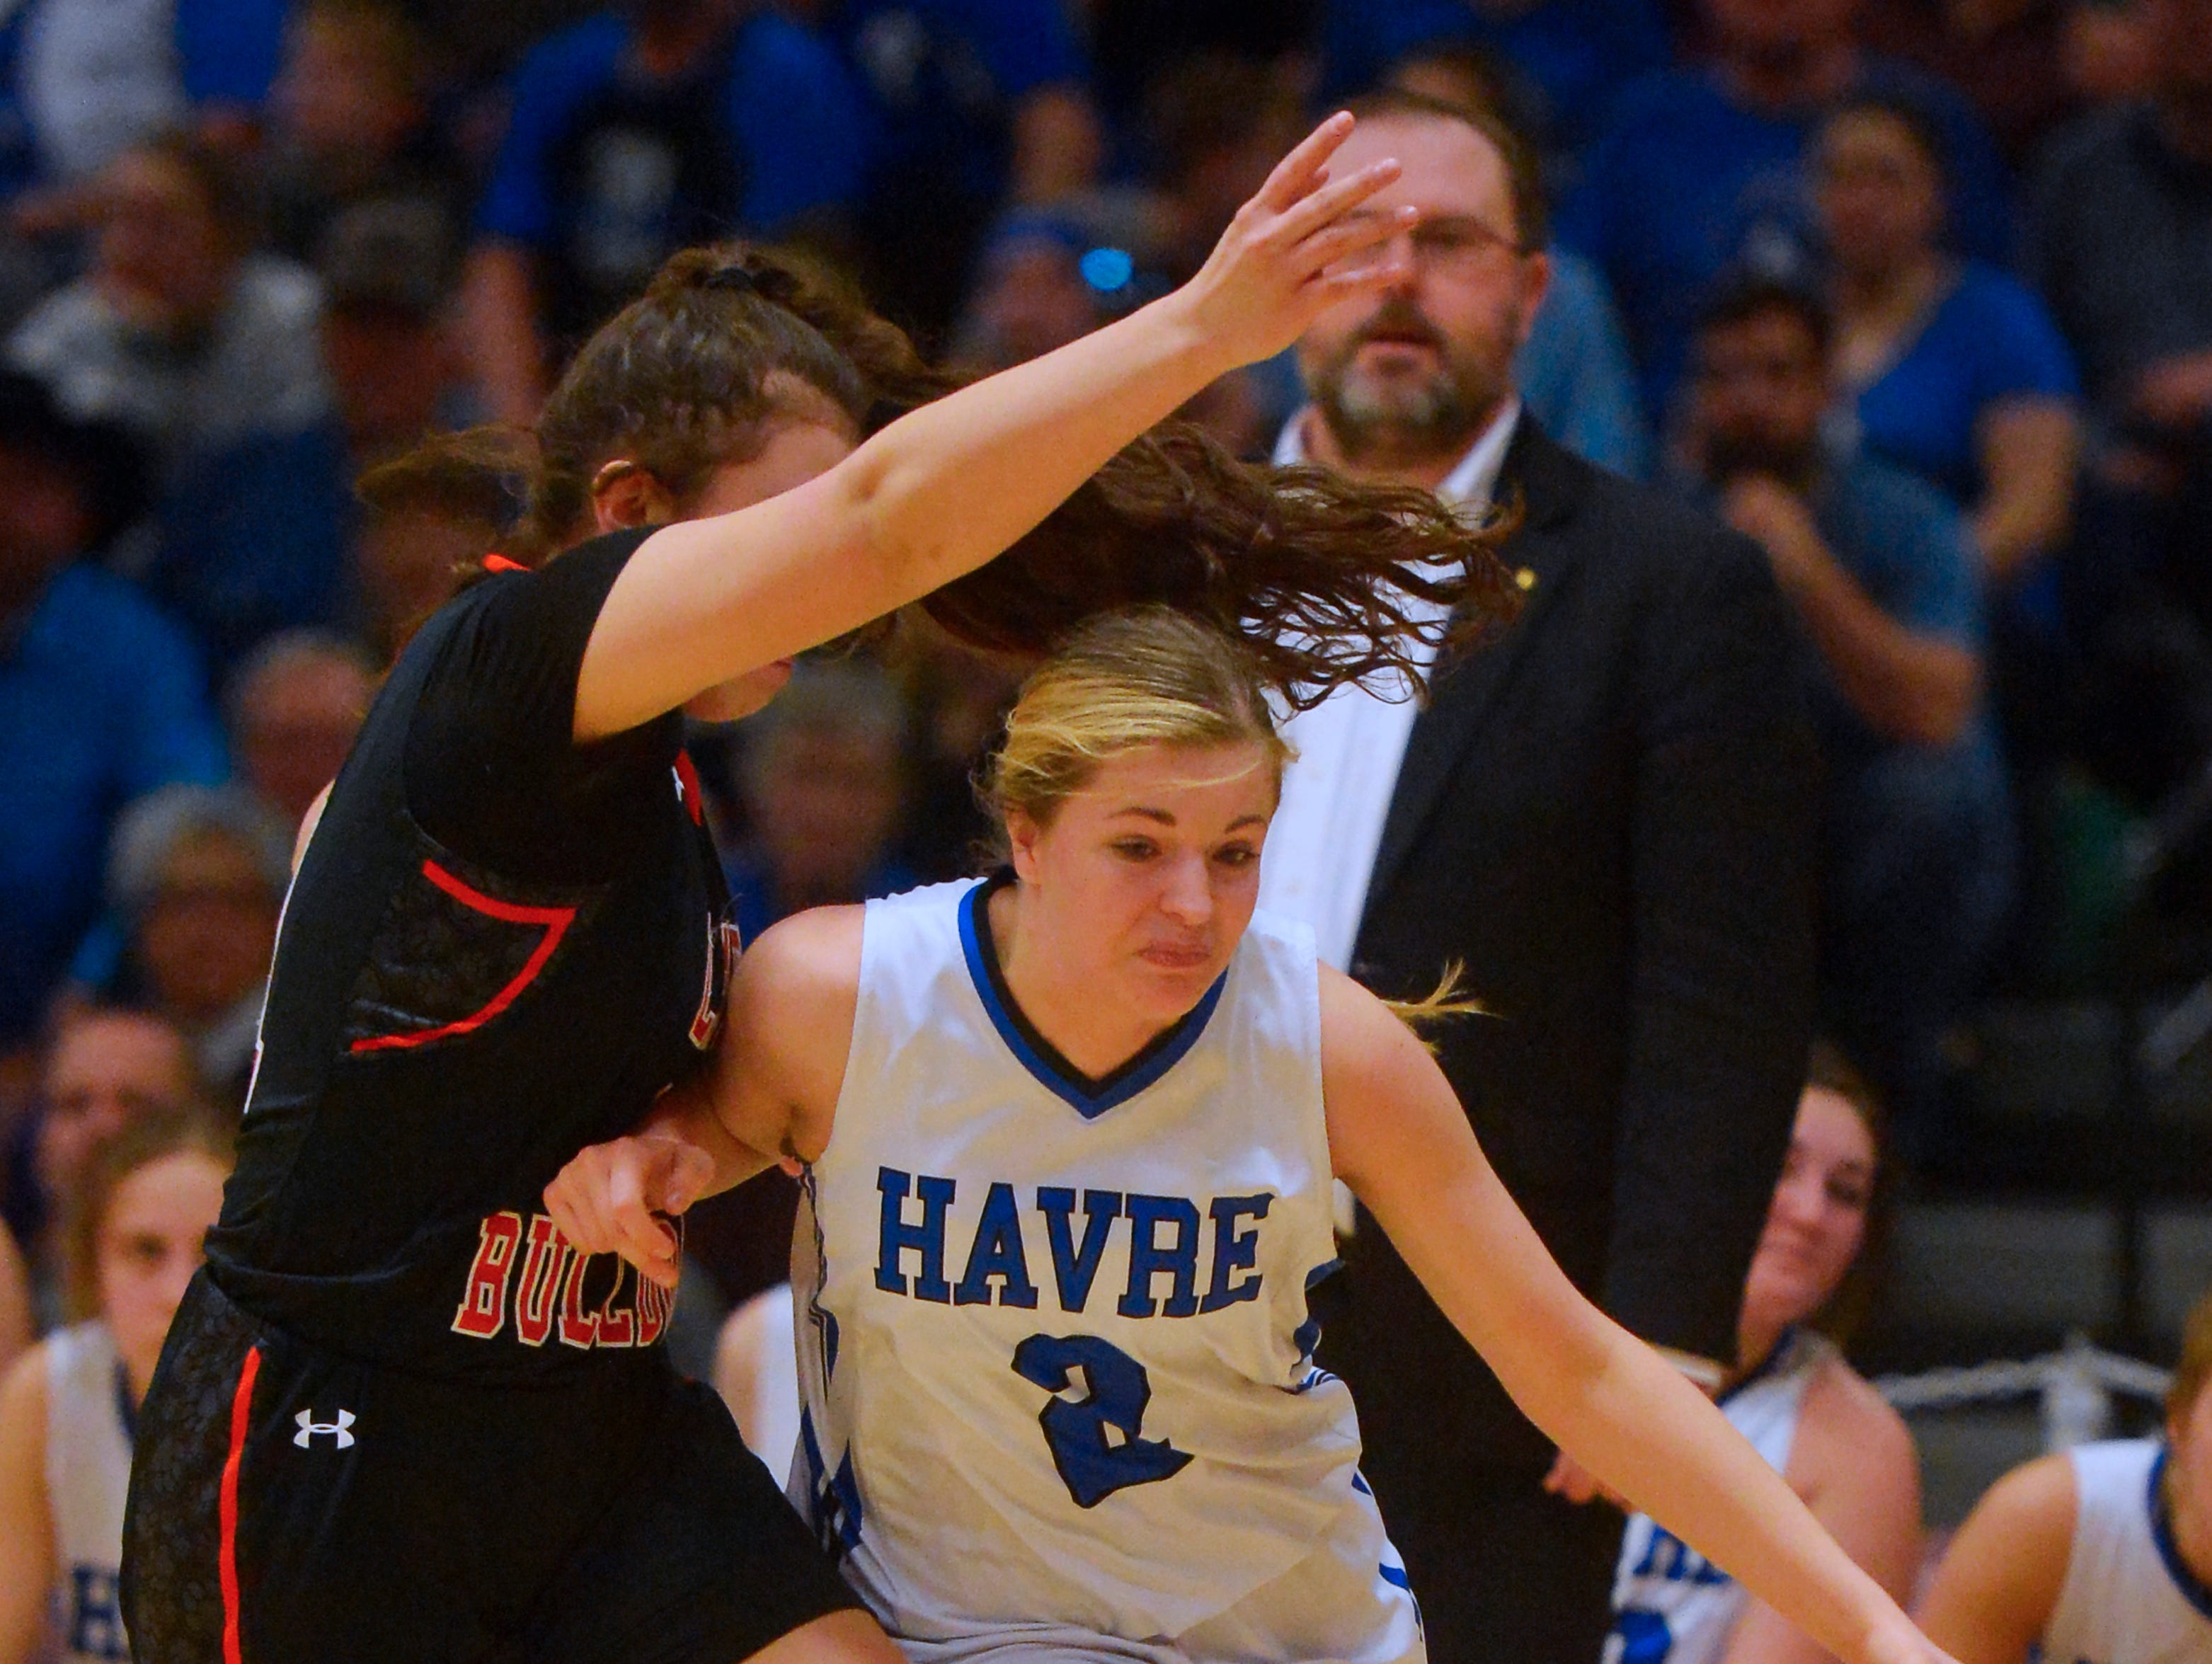 Havre's Sam Oliver drives to the basket during the title game of the State Class A Basketball Tournament against Hardin in the Four Seasons Arena, Saturday.